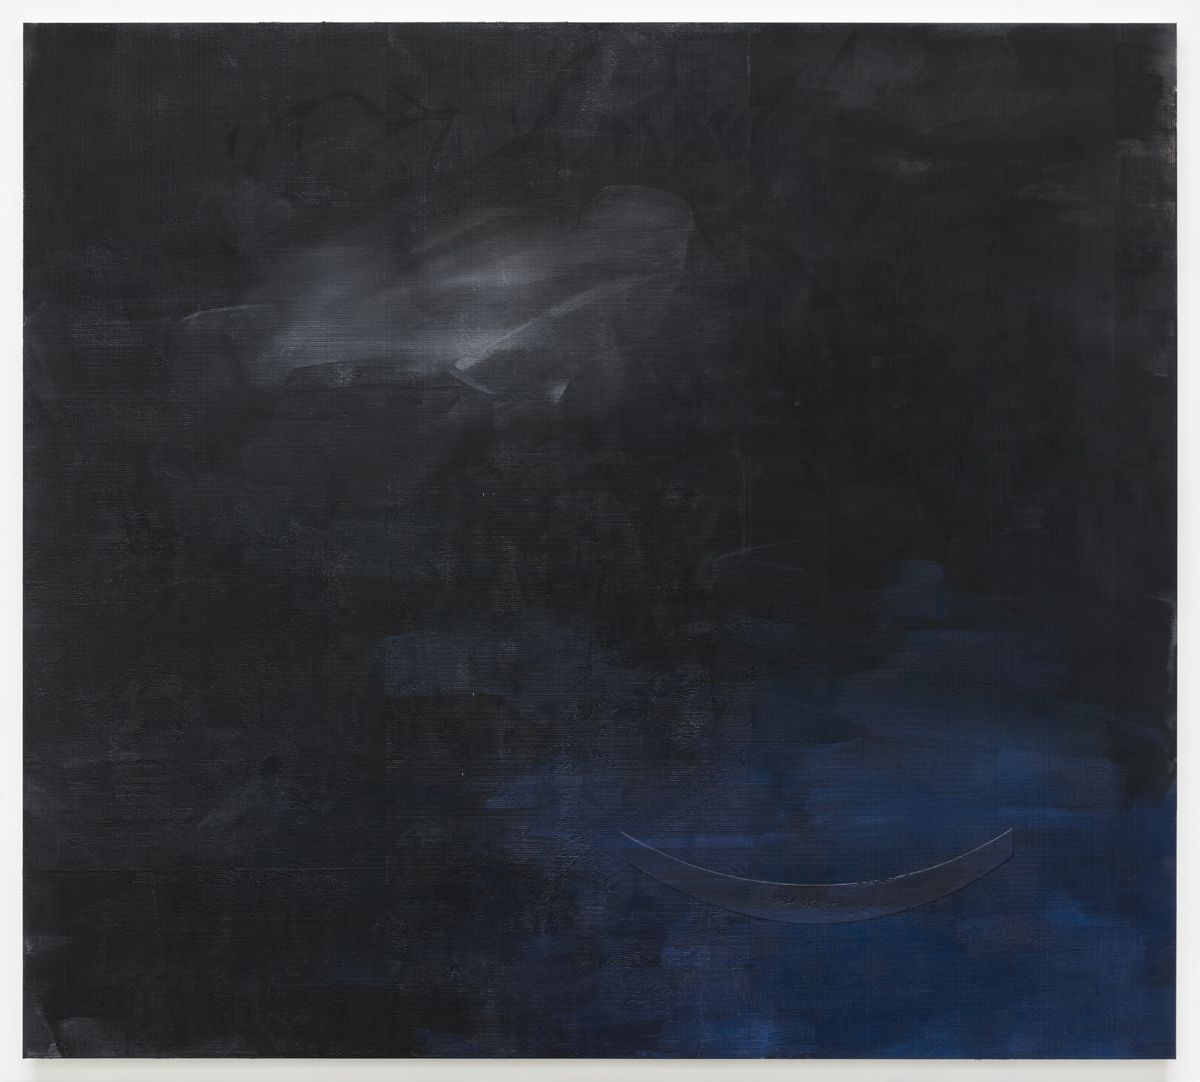 Jacqueline Humphries  ☁️), 2019,  Oil on linen,  114 x 127 inches (289.6 x 322.6 cm)